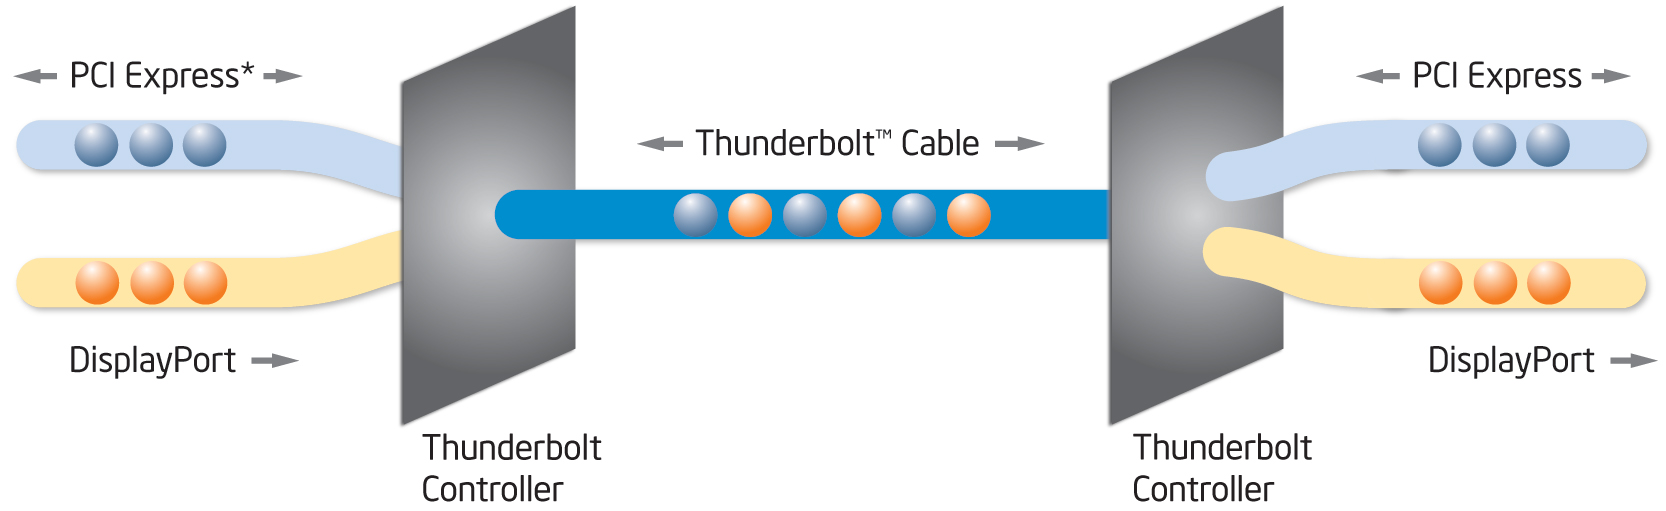 A First Look At Thunderbolt On Windows With Msis Z77a Gd80 Block Diagram Hard Disk Additionally Intel Z77 Chipset